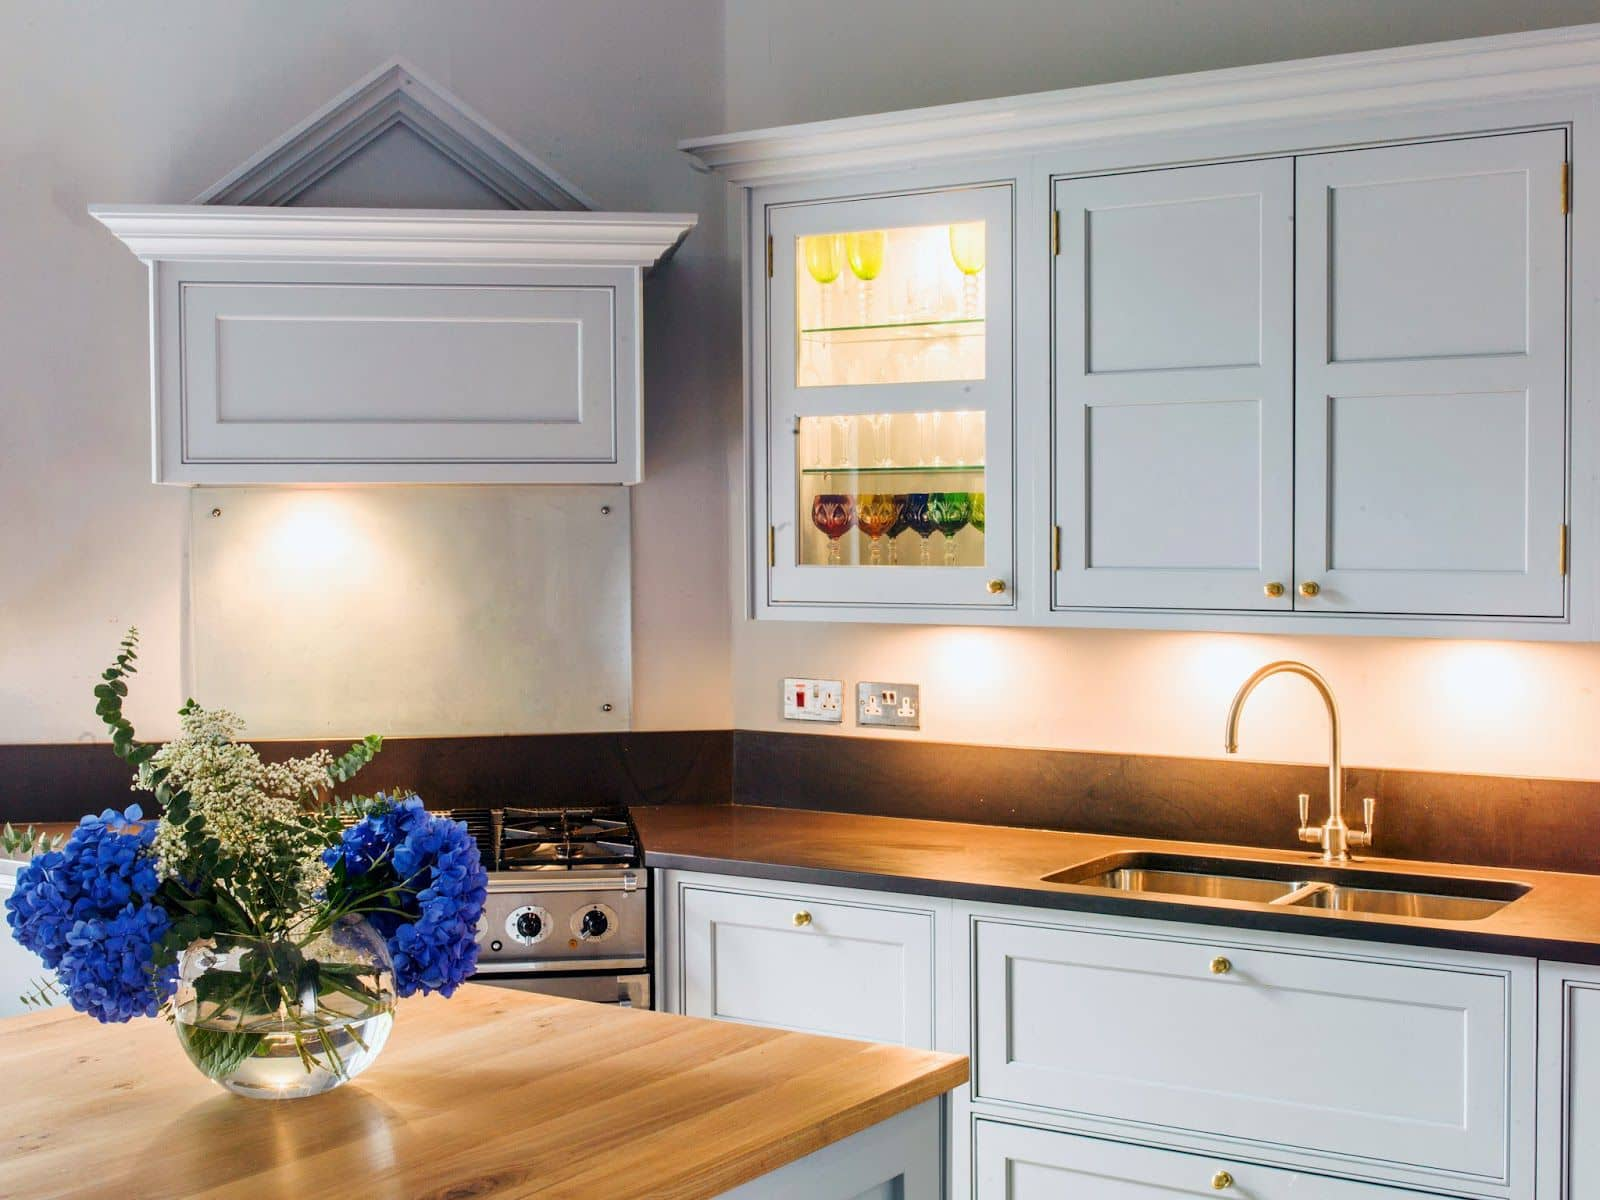 Georgian kitchen design georgian kitchen design flickr for Georgian style kitchen designs